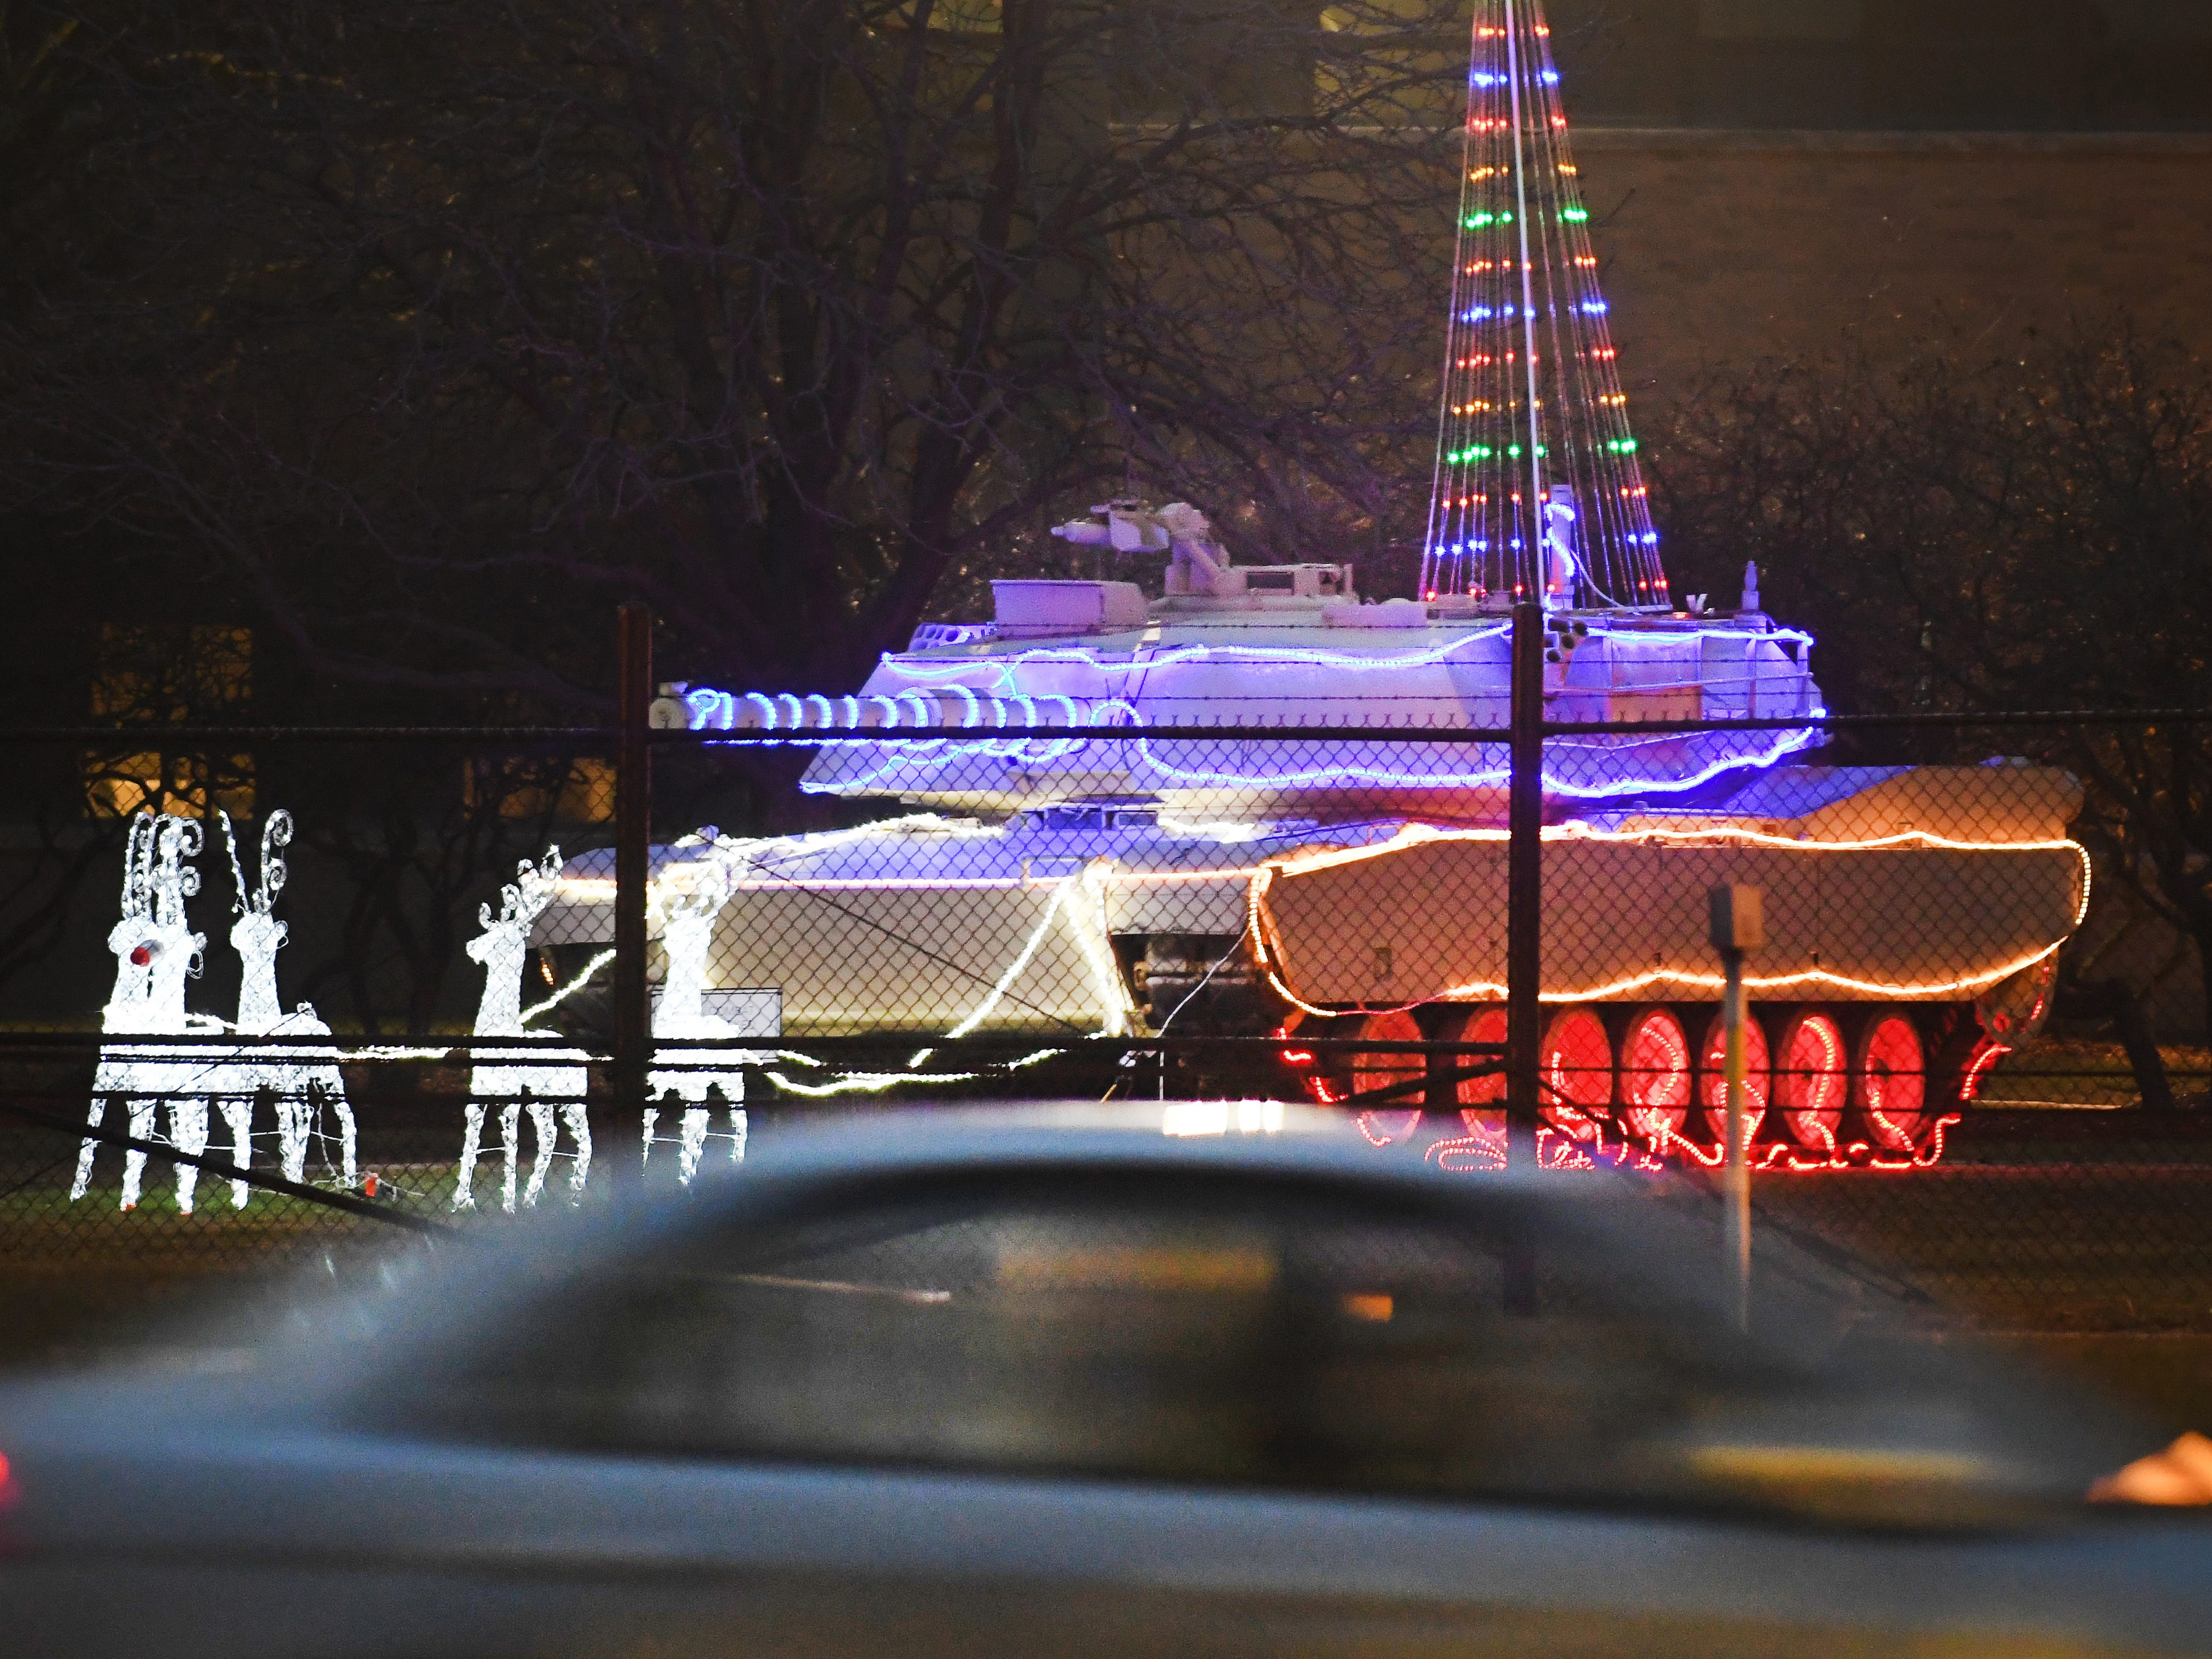 A decorated tank in front of the U.S. Army Tank Automotive Command sends a cheery yet formidable holiday greeting off E. 11 Mile in Warren, Michigan, on Dec. 14, 2018.